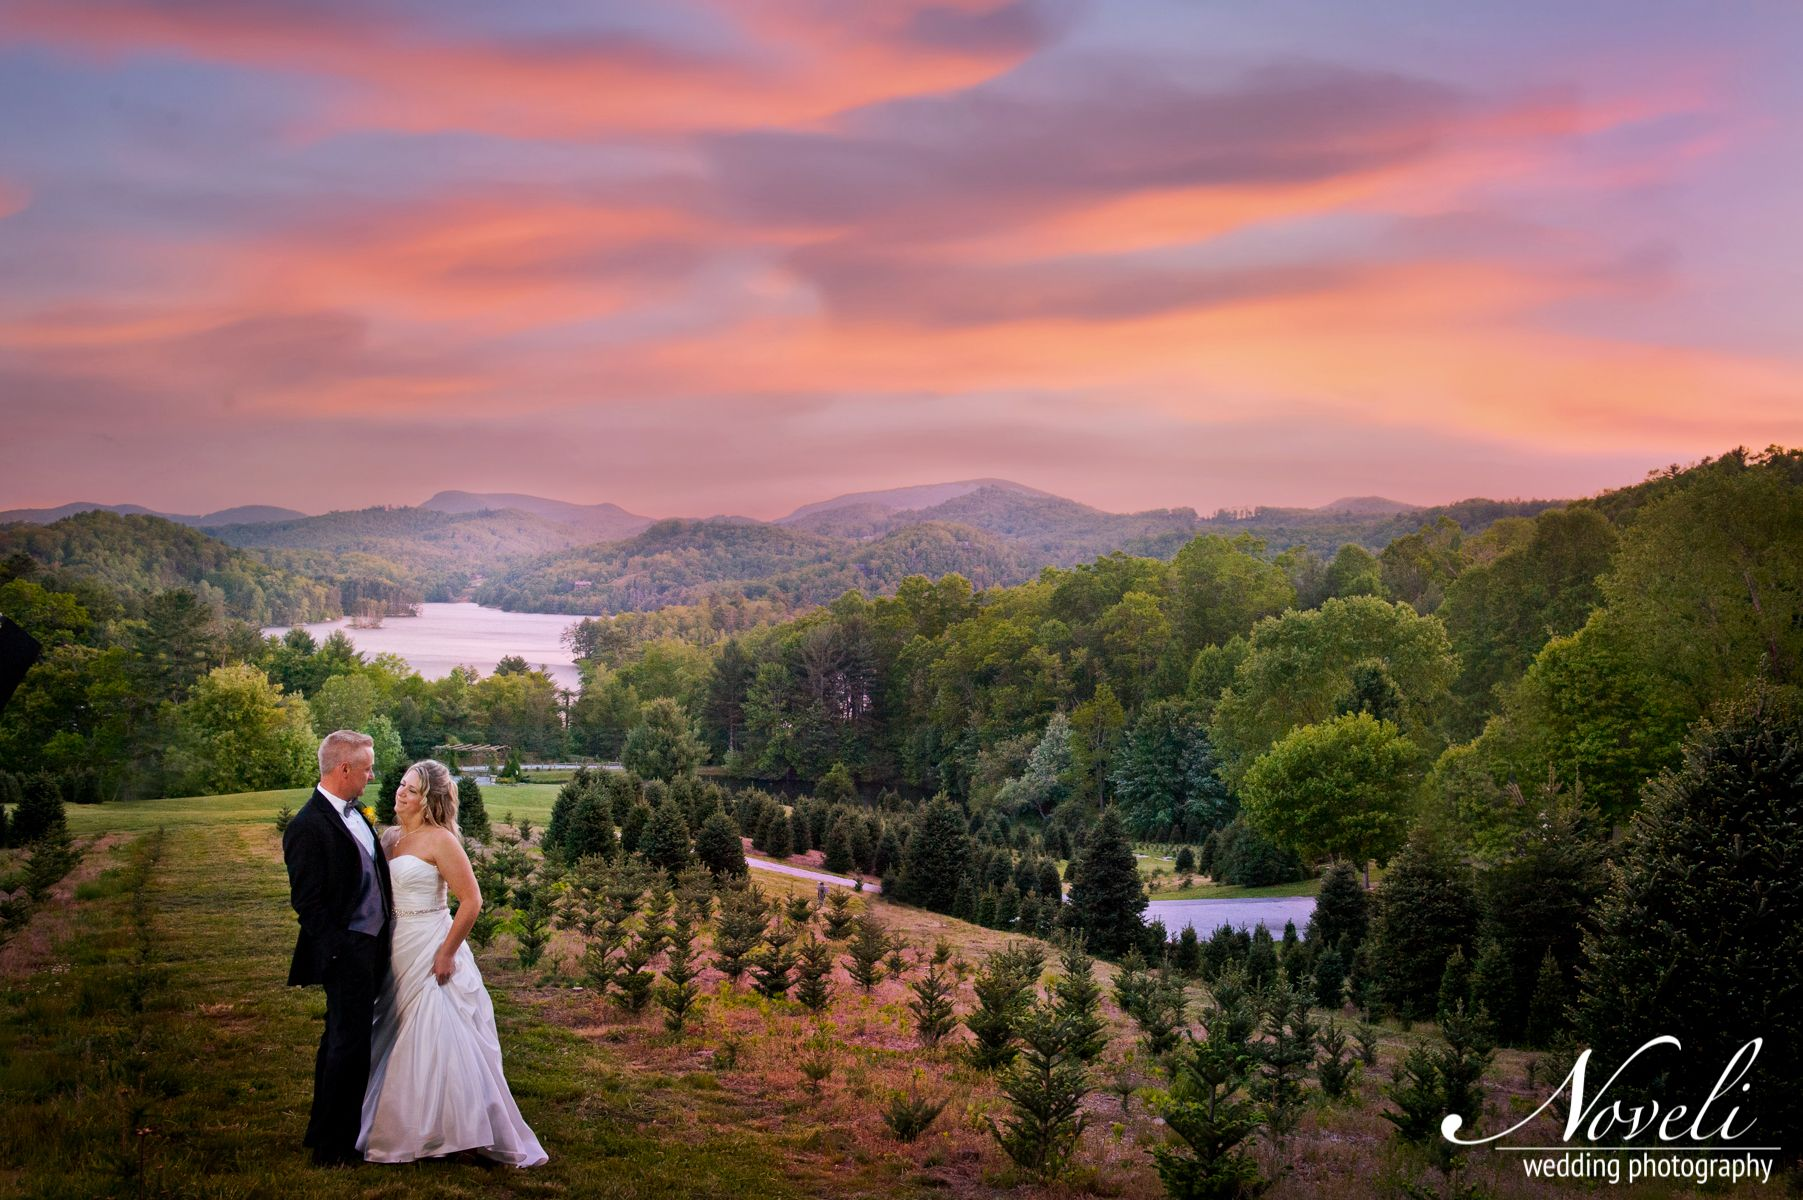 Wedding photo - beautiful sunset against mountains and Lake Glenville, Cashiers, NC.   Nc ...